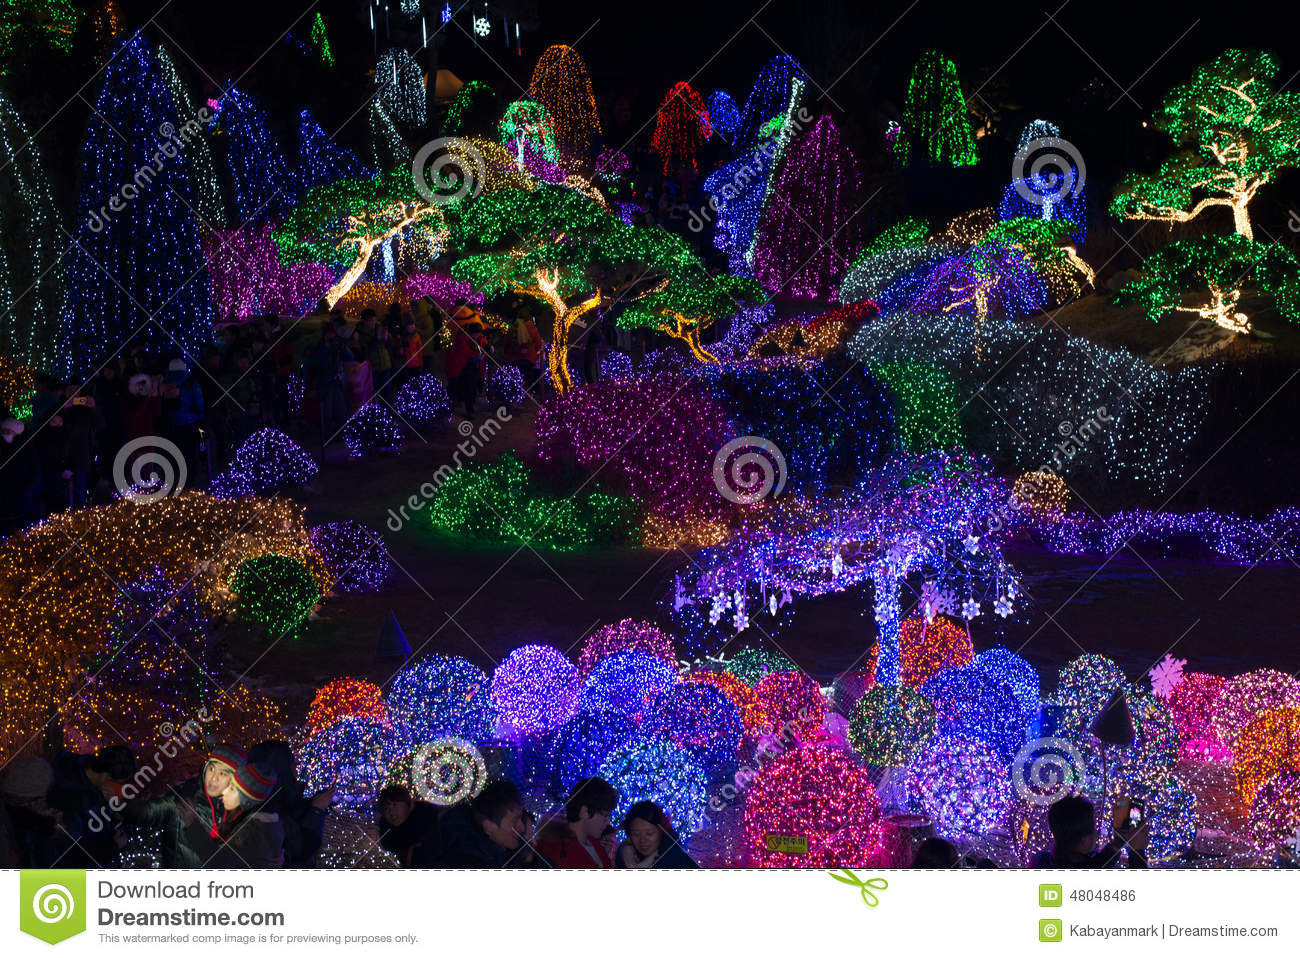 Flower Light festival at night Garden morning calm